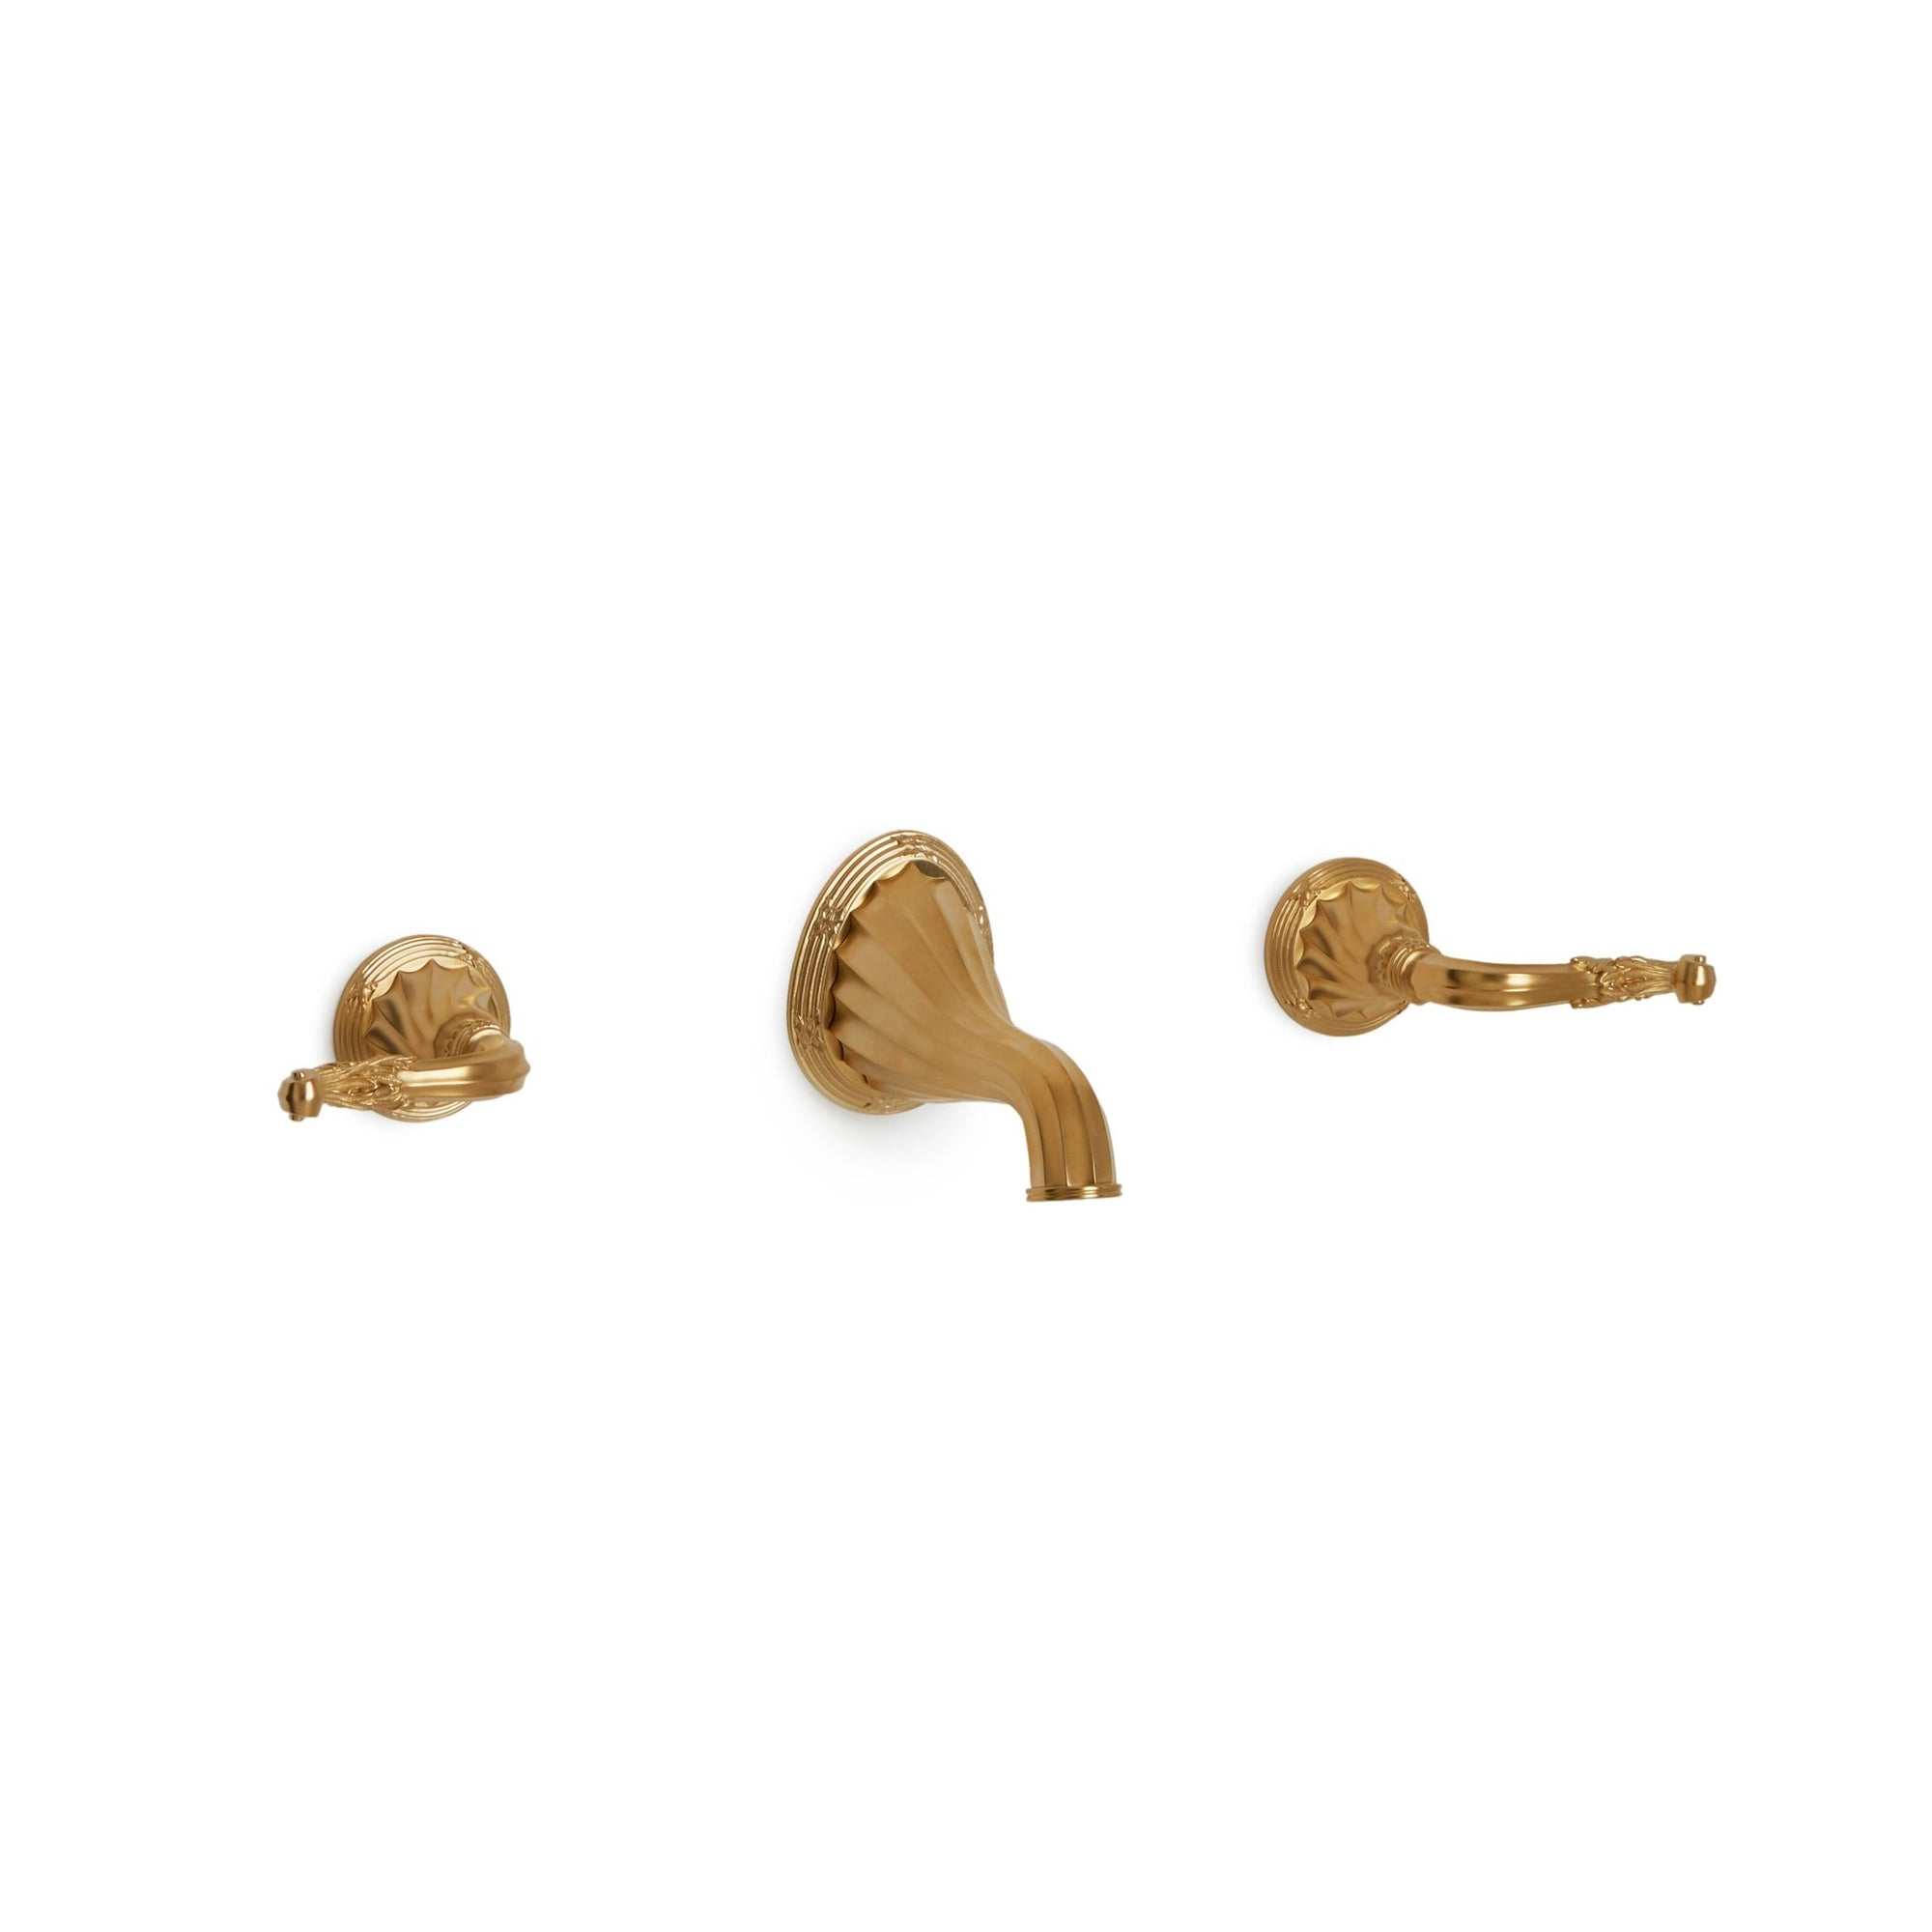 0912WBS818-GP Sherle Wagner International Ribbon and Reed Lever Wall Mount Faucet Set in Gold Plate metal finish